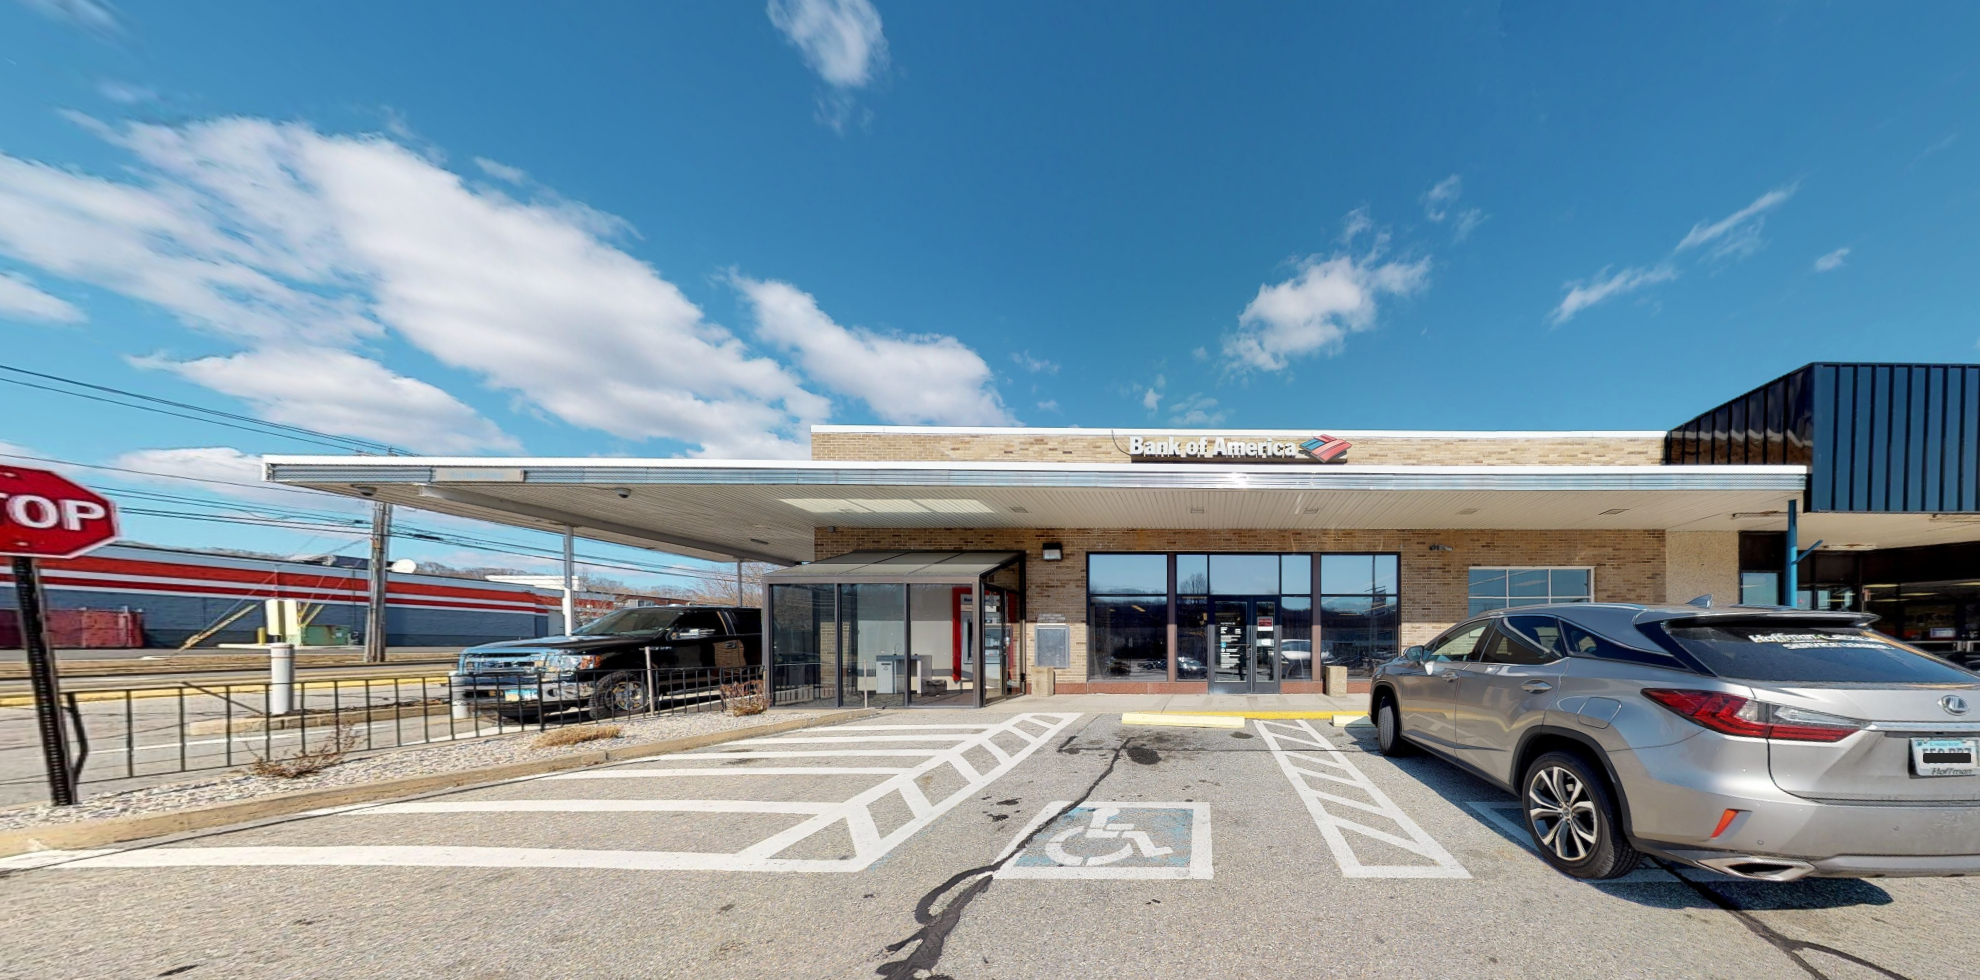 Bank of America financial center with drive-thru ATM | 738 Long Hill Rd, Groton, CT 06340